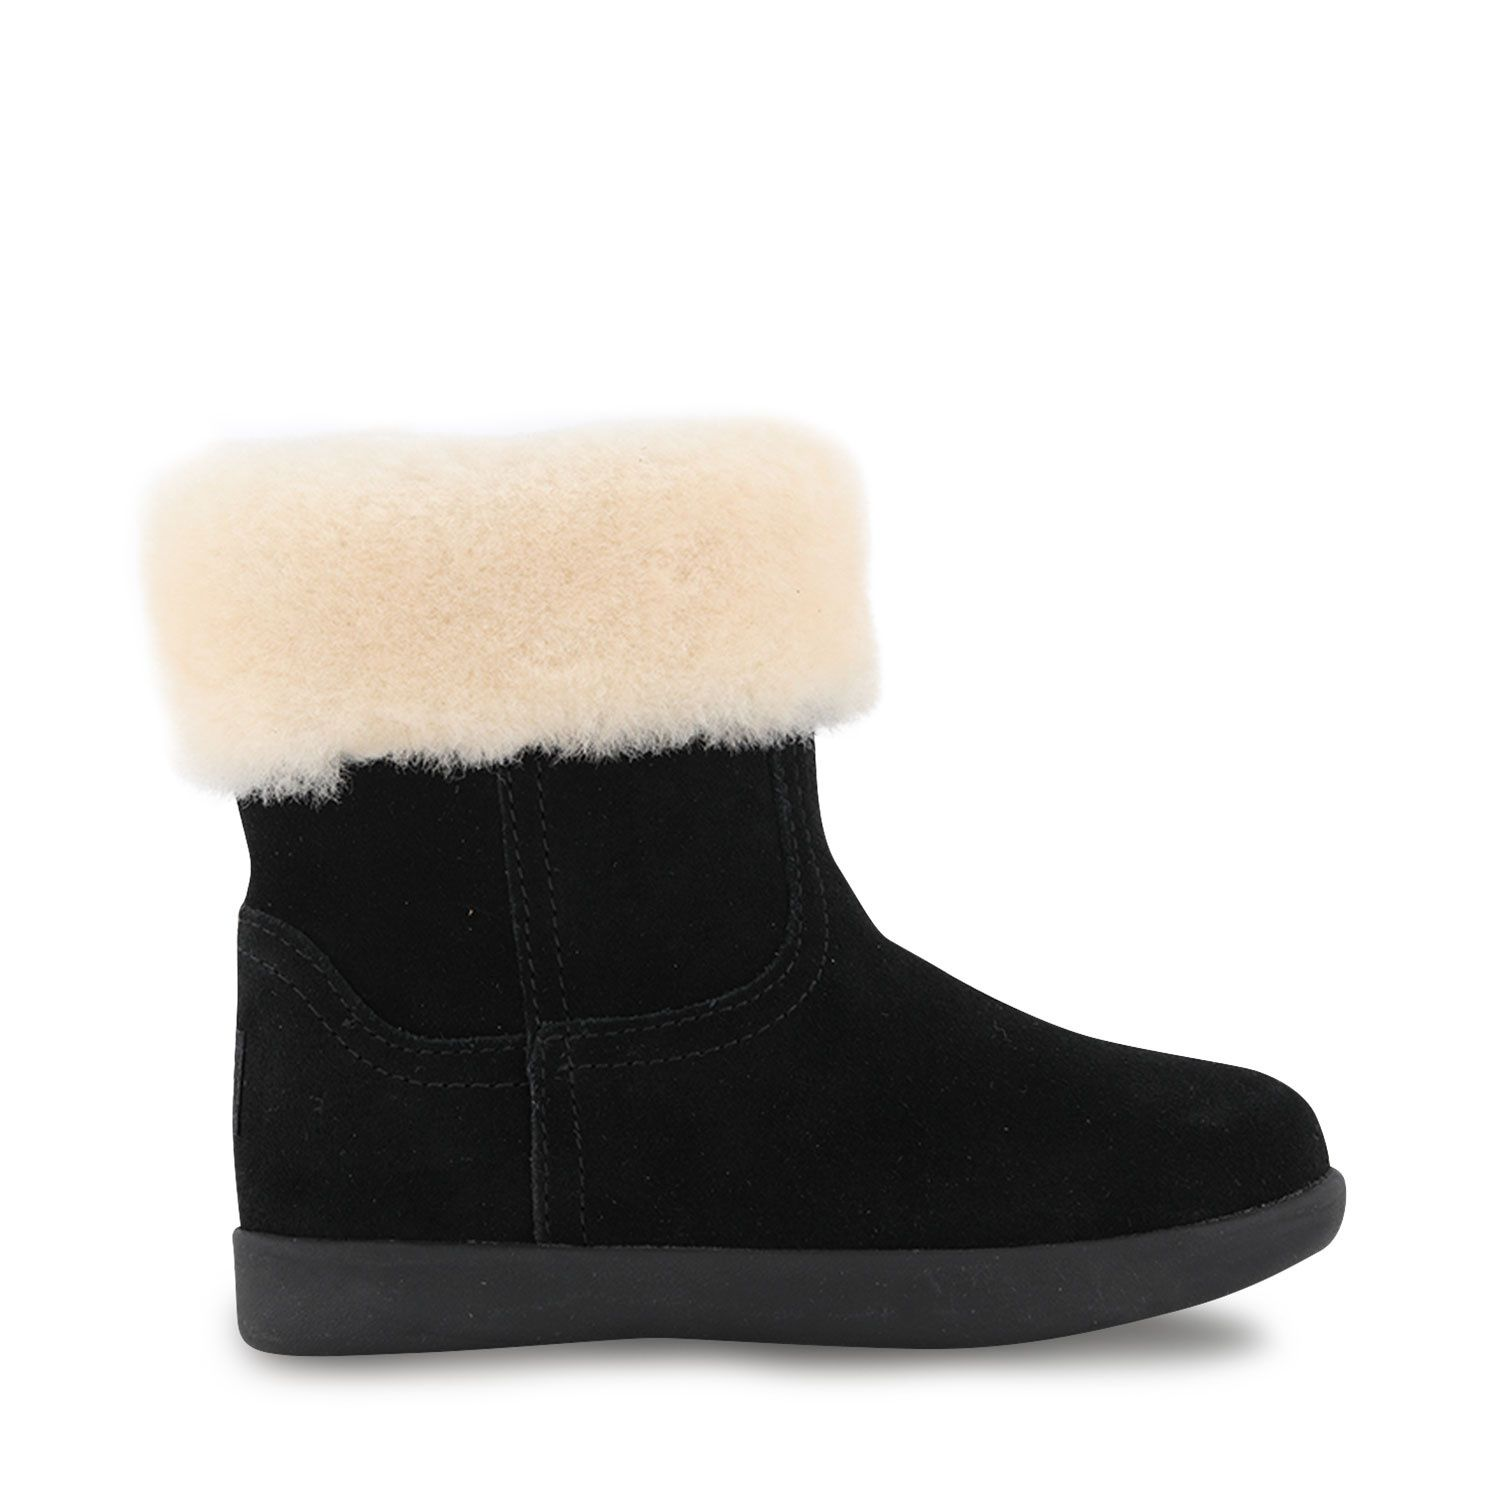 Picture of Ugg 1097034 kids boots black